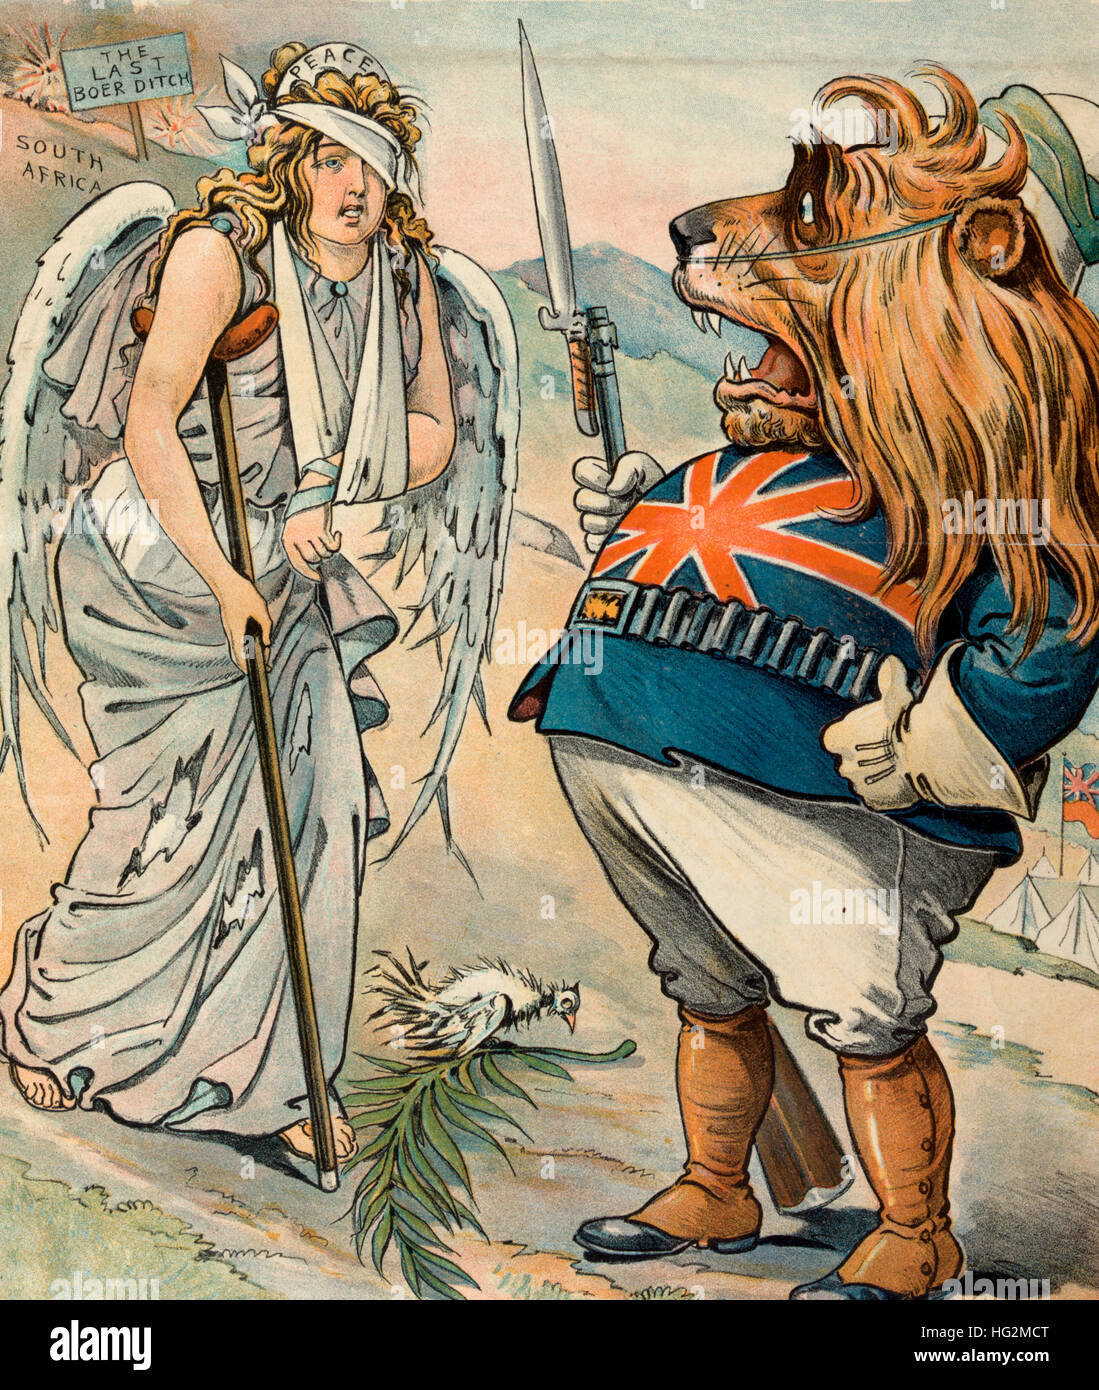 A Misunderstanding - Political Cartoon showing the British Lion, wearing a military uniform, aghast by the tattered - Stock Image